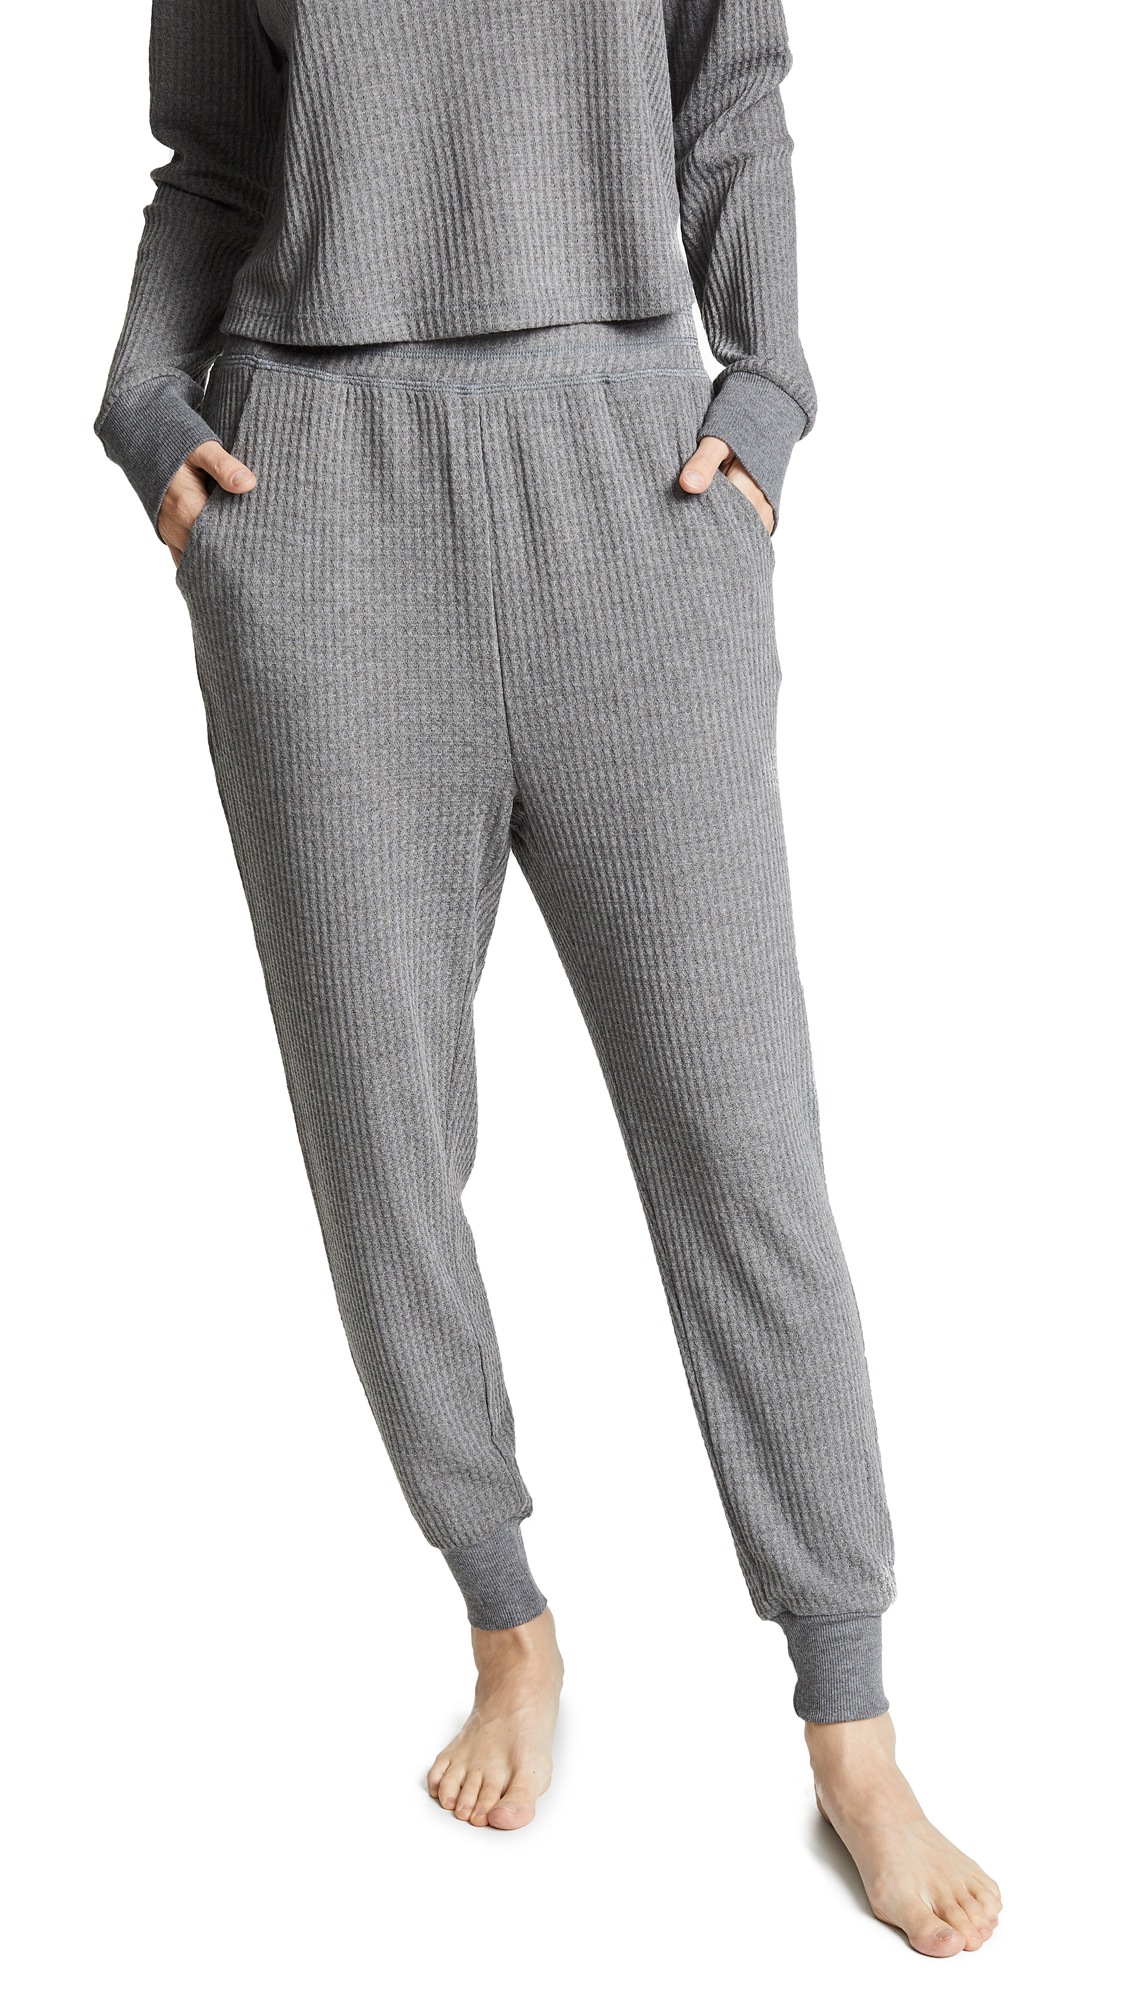 Honeydew Intimates Sneak Peek Waffle Knit Lounge Pants In Heather Grey